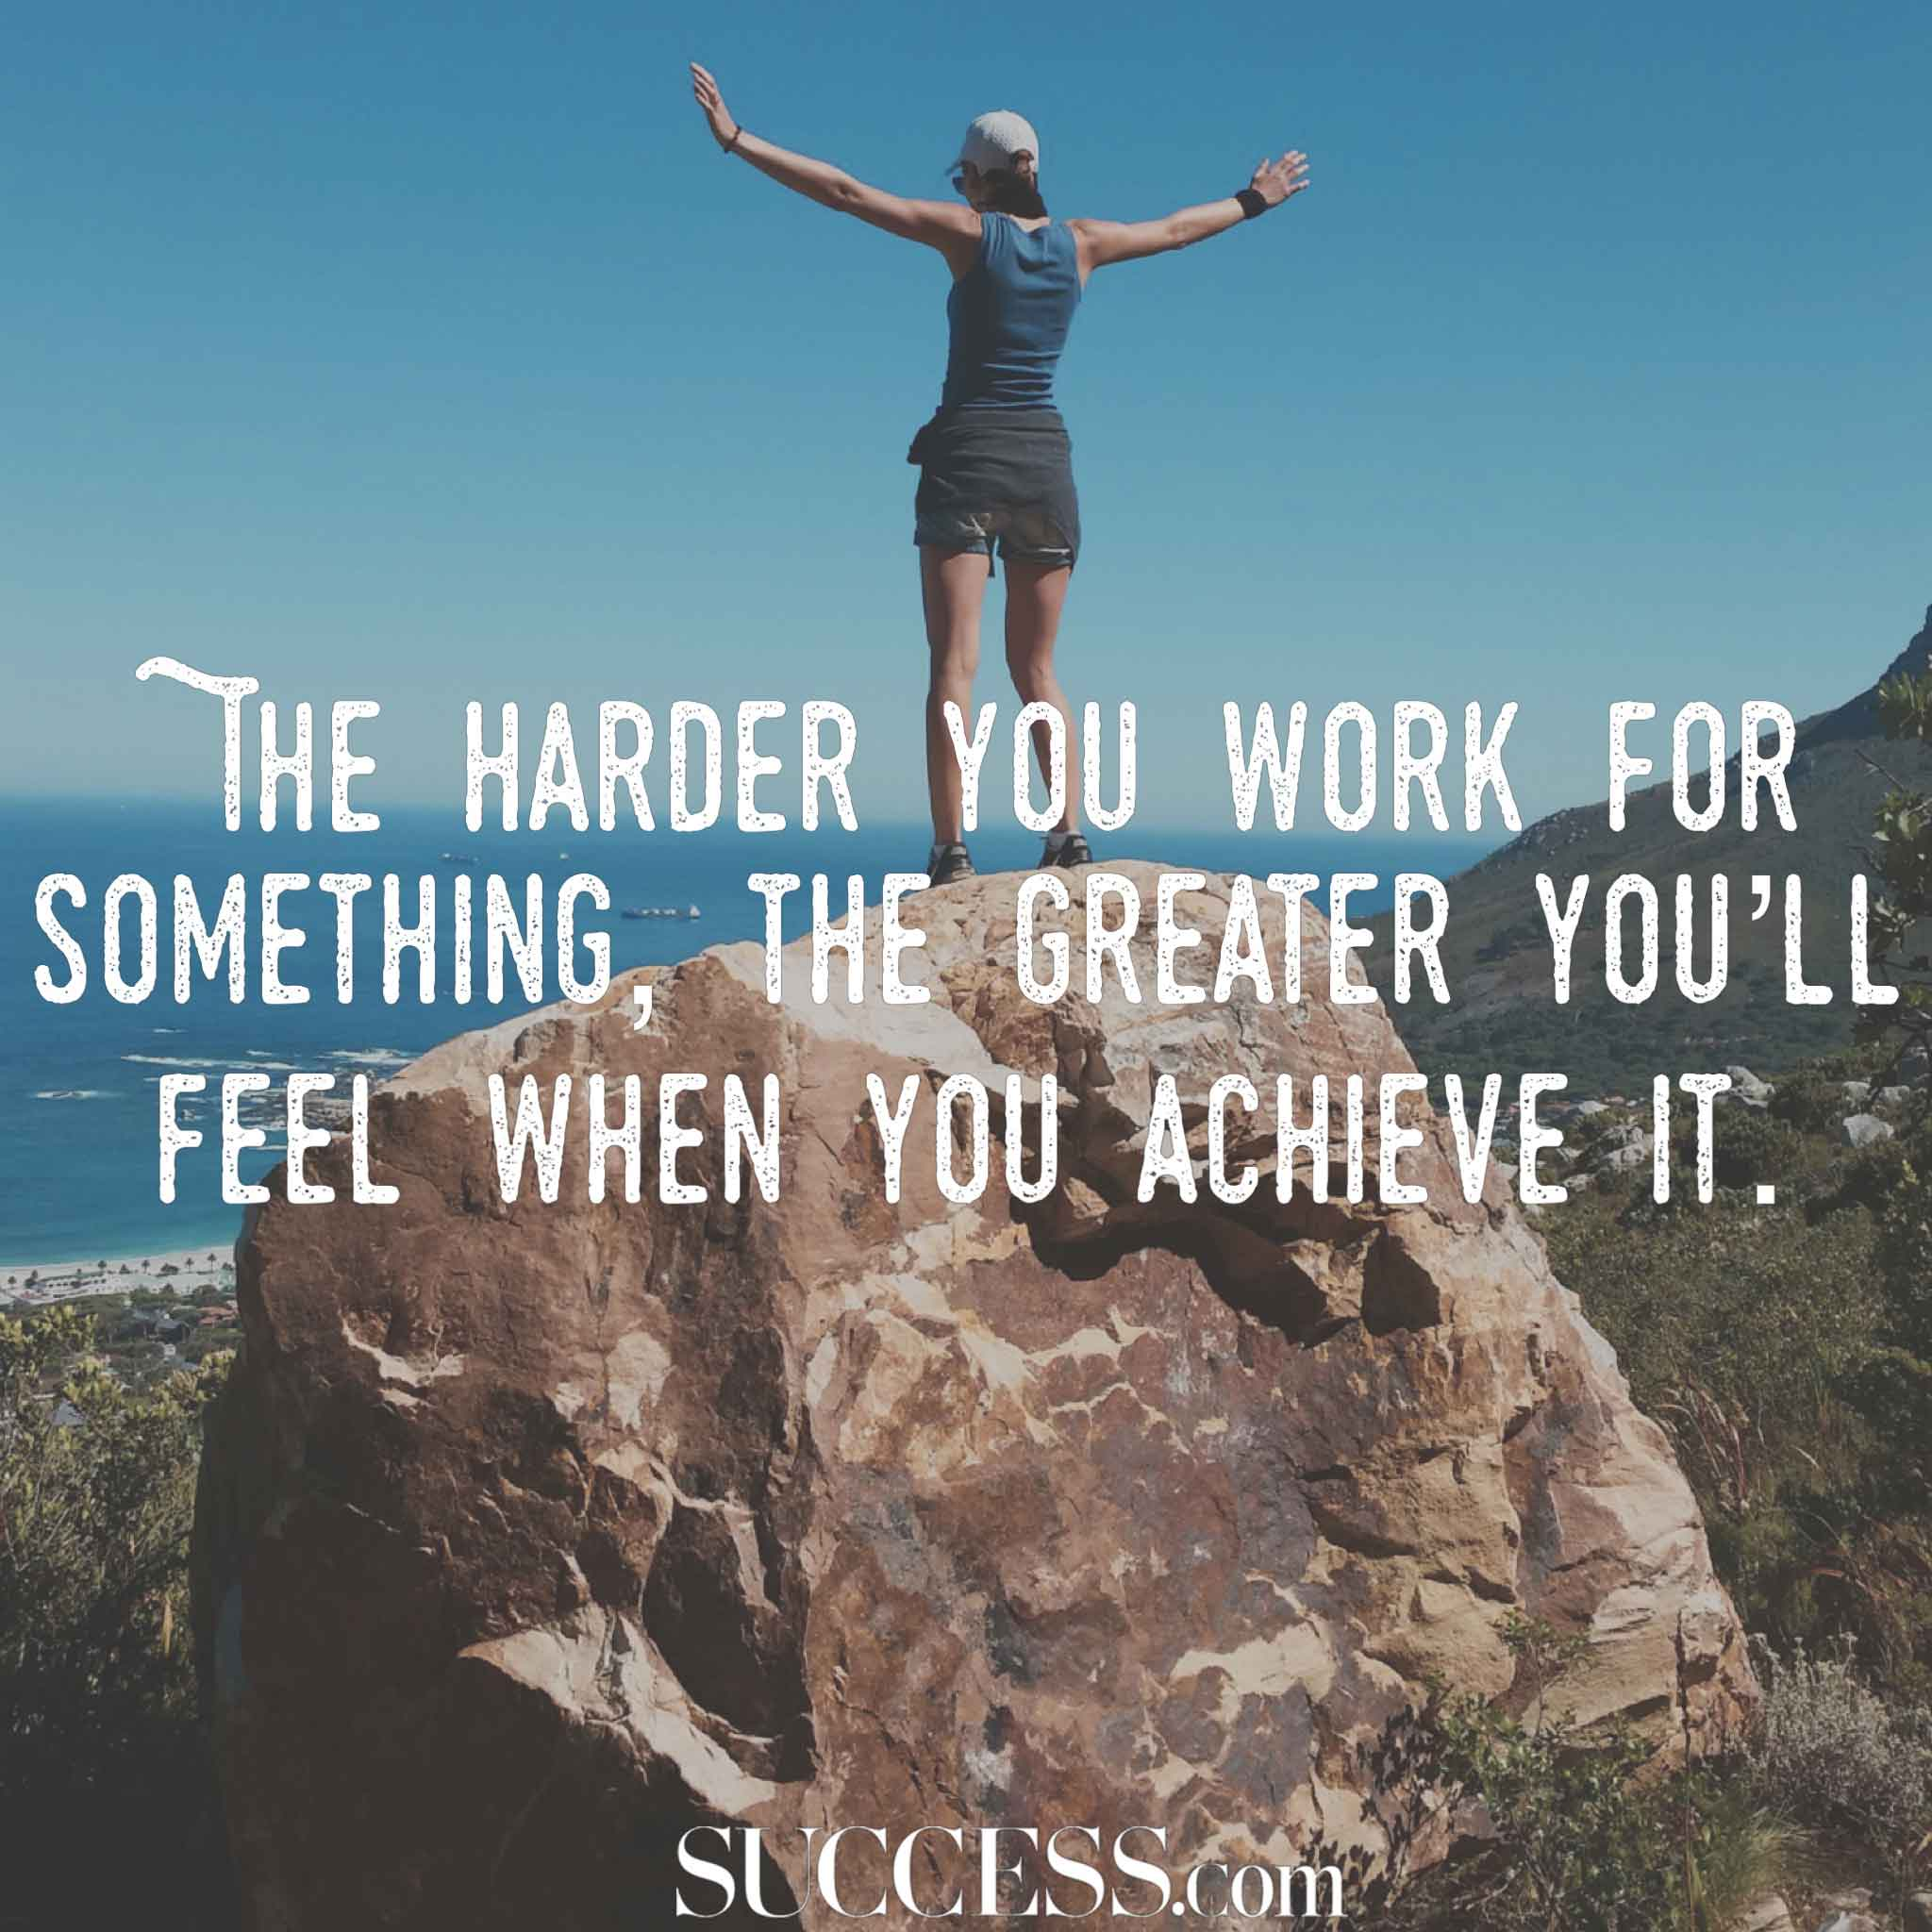 Motivational Quotes About Success: 17 Motivational Quotes To Inspire You To Be Successful